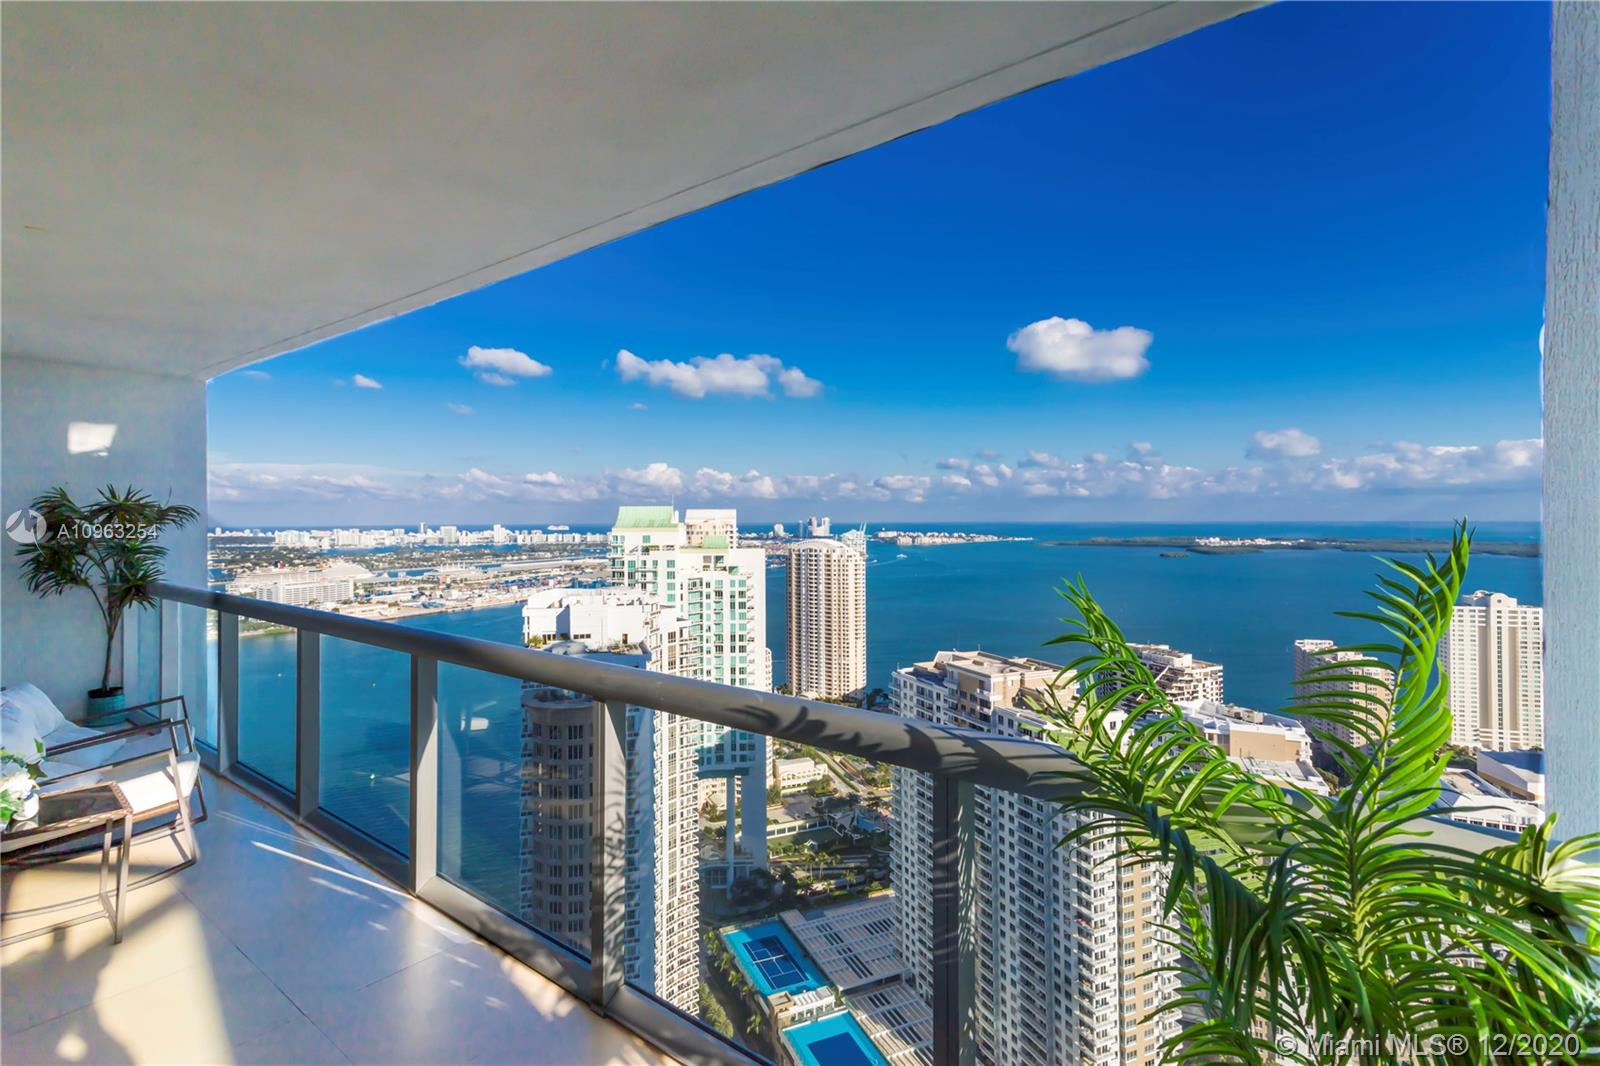 Icon Brickell 1 #4507 - 475 Brickell Ave #4507, Miami, FL 33131